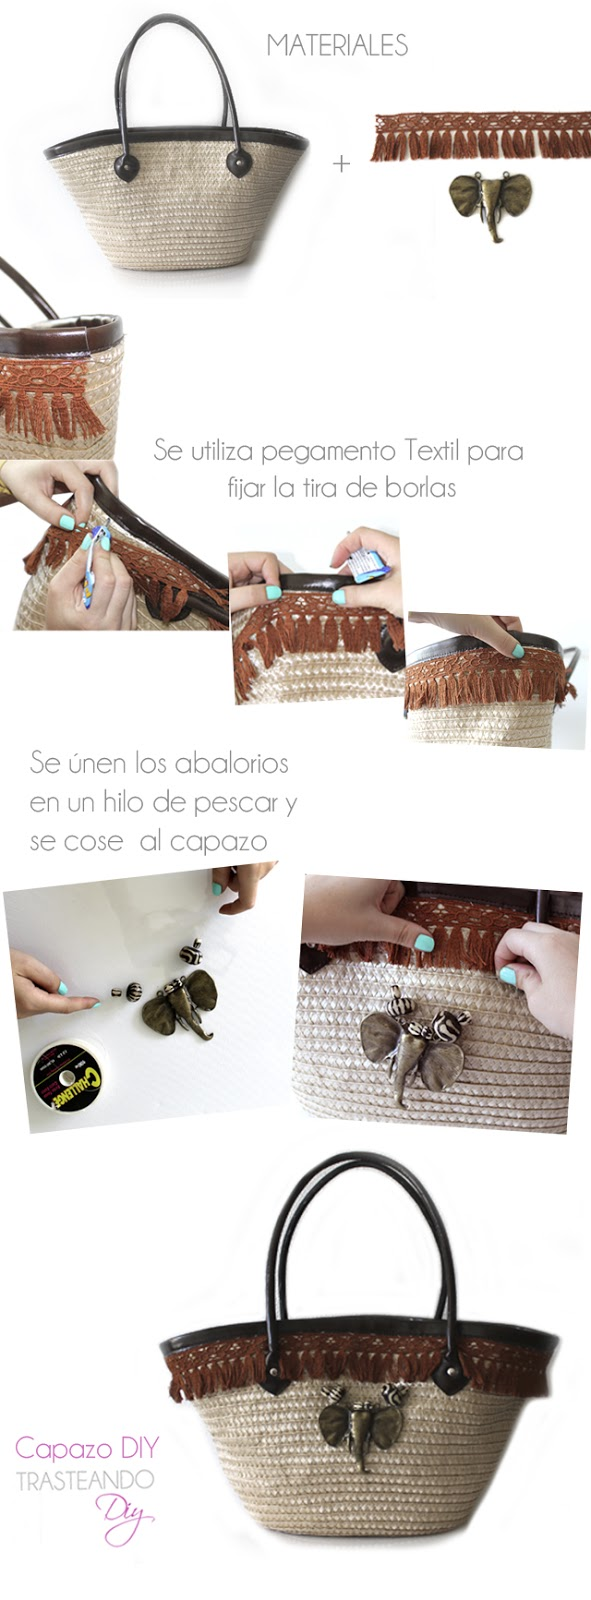 DIY CUSTOMIZACION CAPAZO CRAFT BOLSO